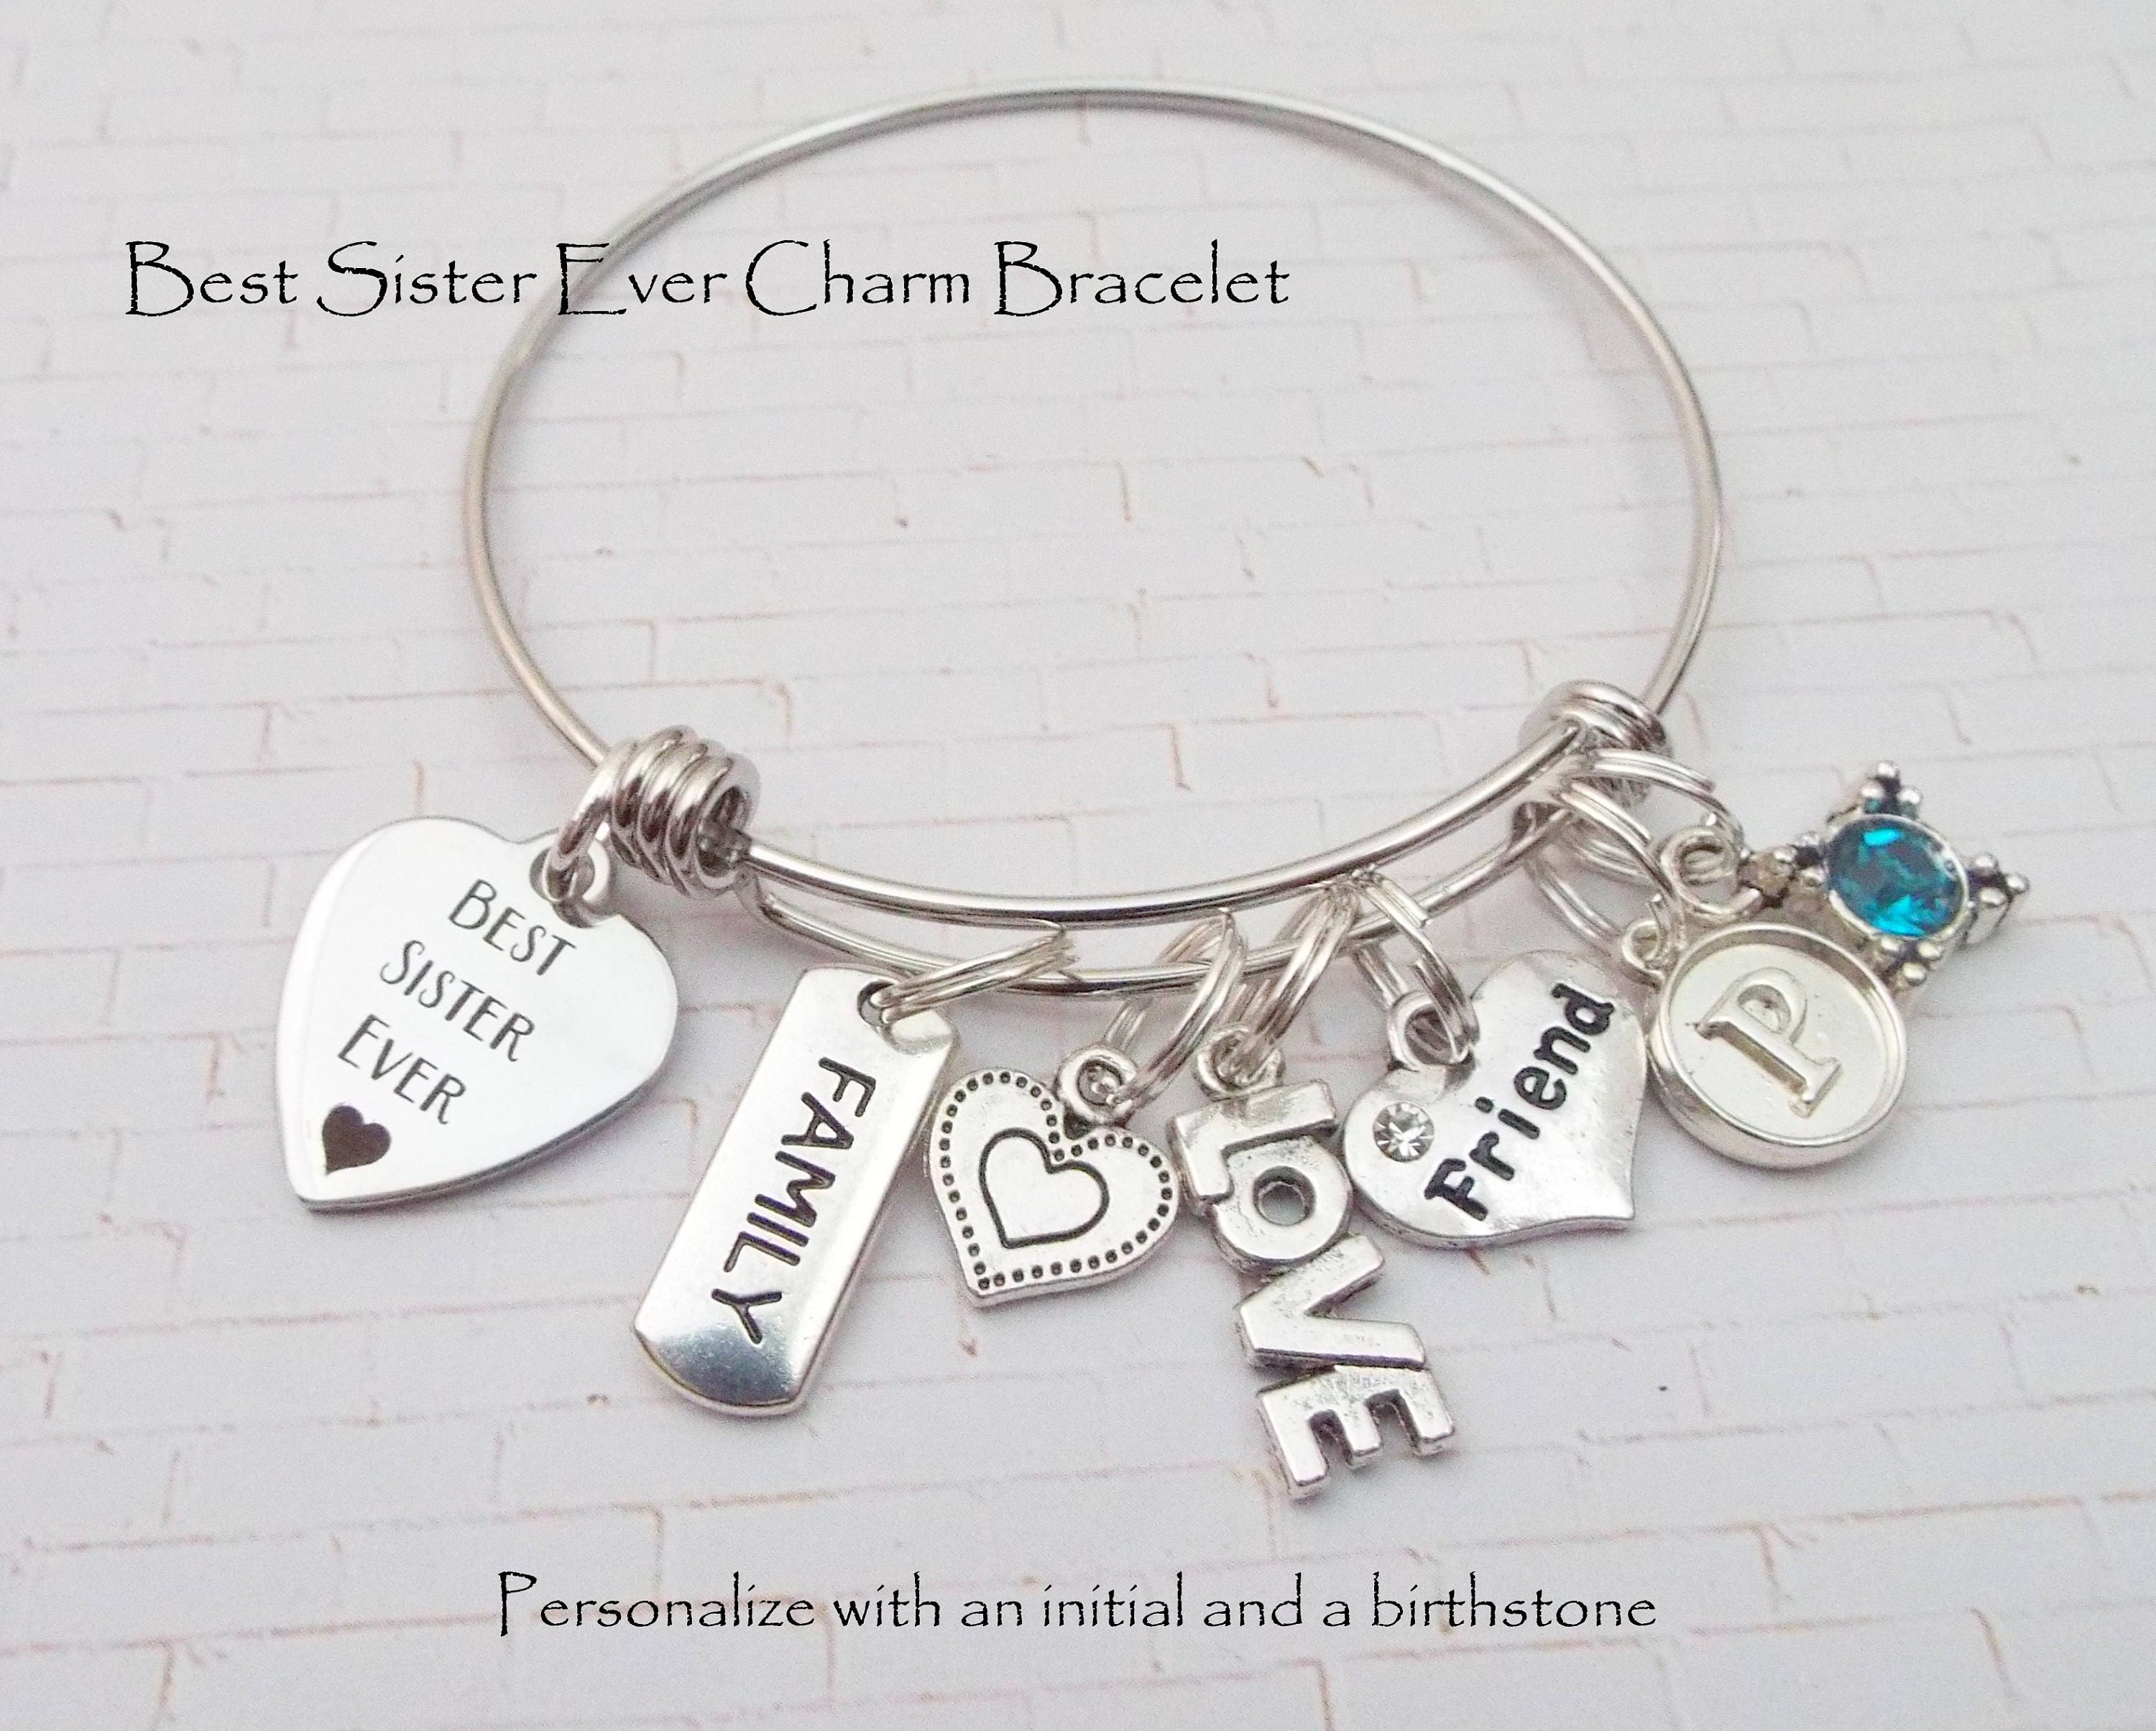 Sister Gift To Charm Bracelet For Personalized Her Jewelry Best Ever Girl